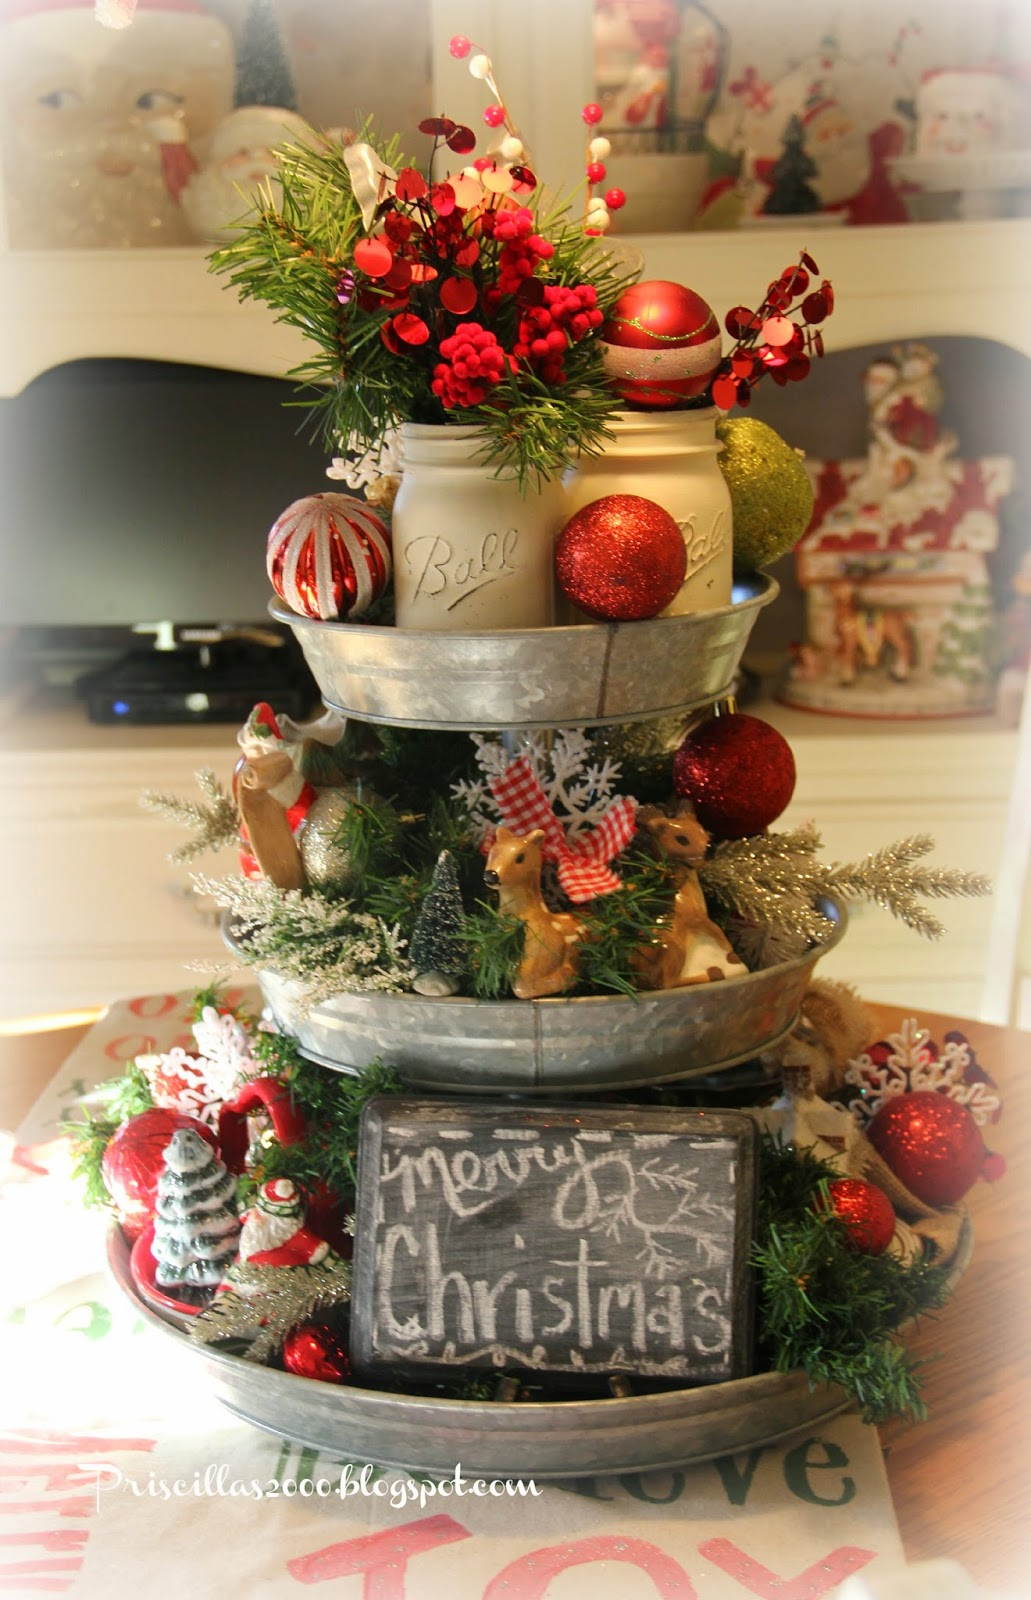 Priscillas christmas galvanized tray centerpiece Small christmas centerpieces